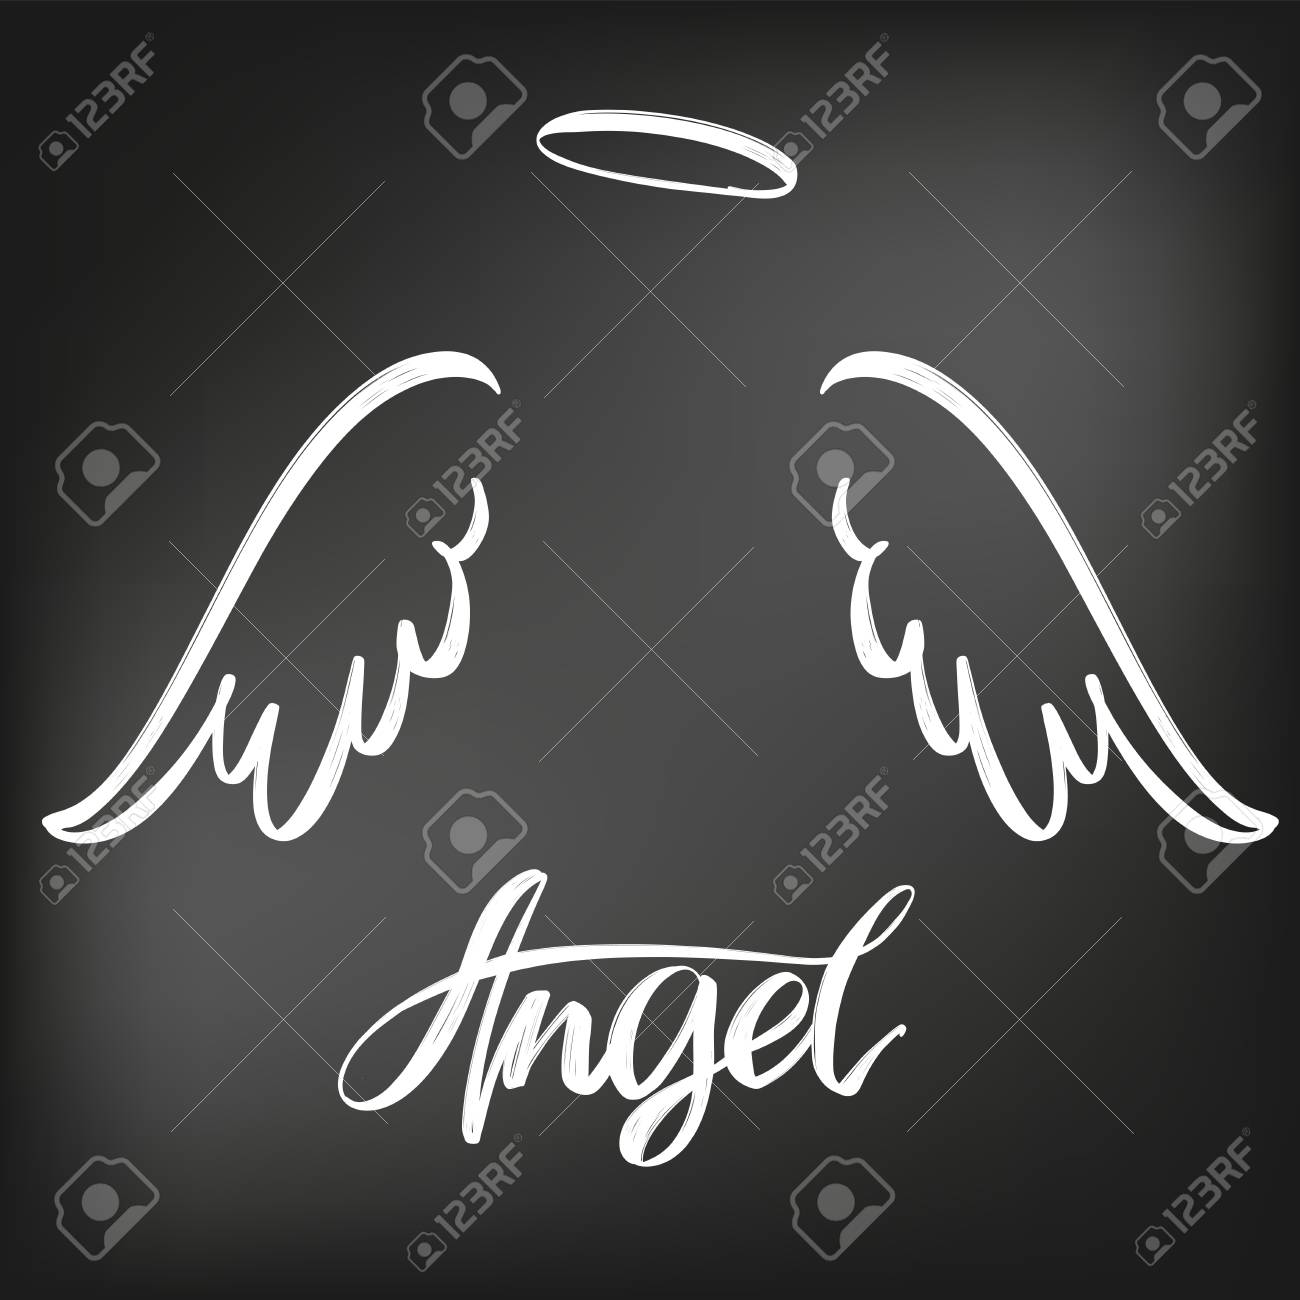 Angel wings icon sketch collection, religious calligraphic text symbol drawn in chalk on a black Board. - 95363243